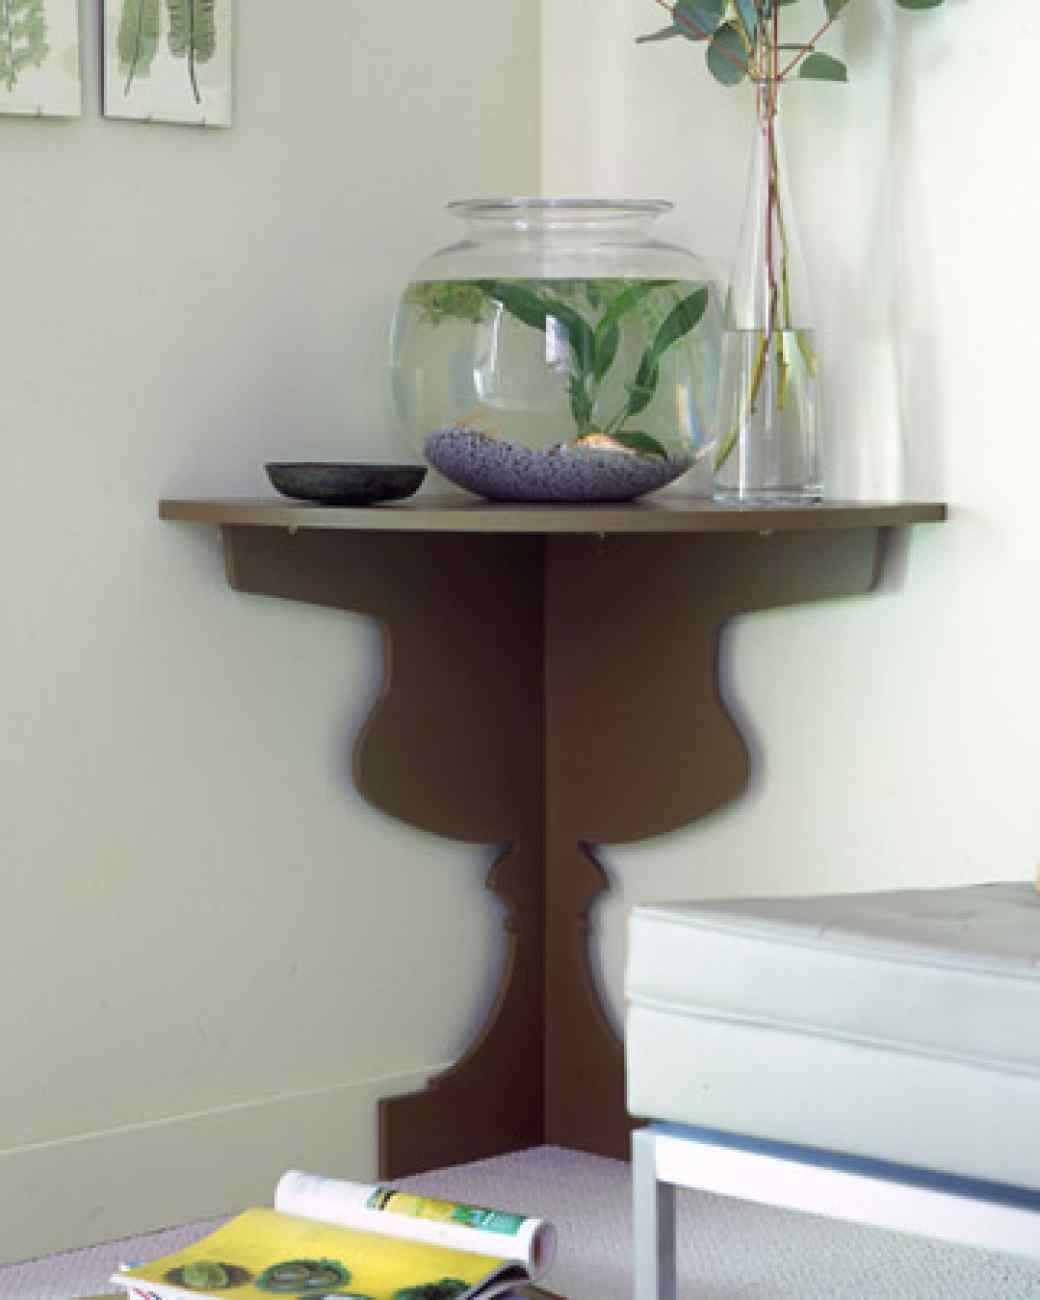 Medium Of Corner Shelf Hanging